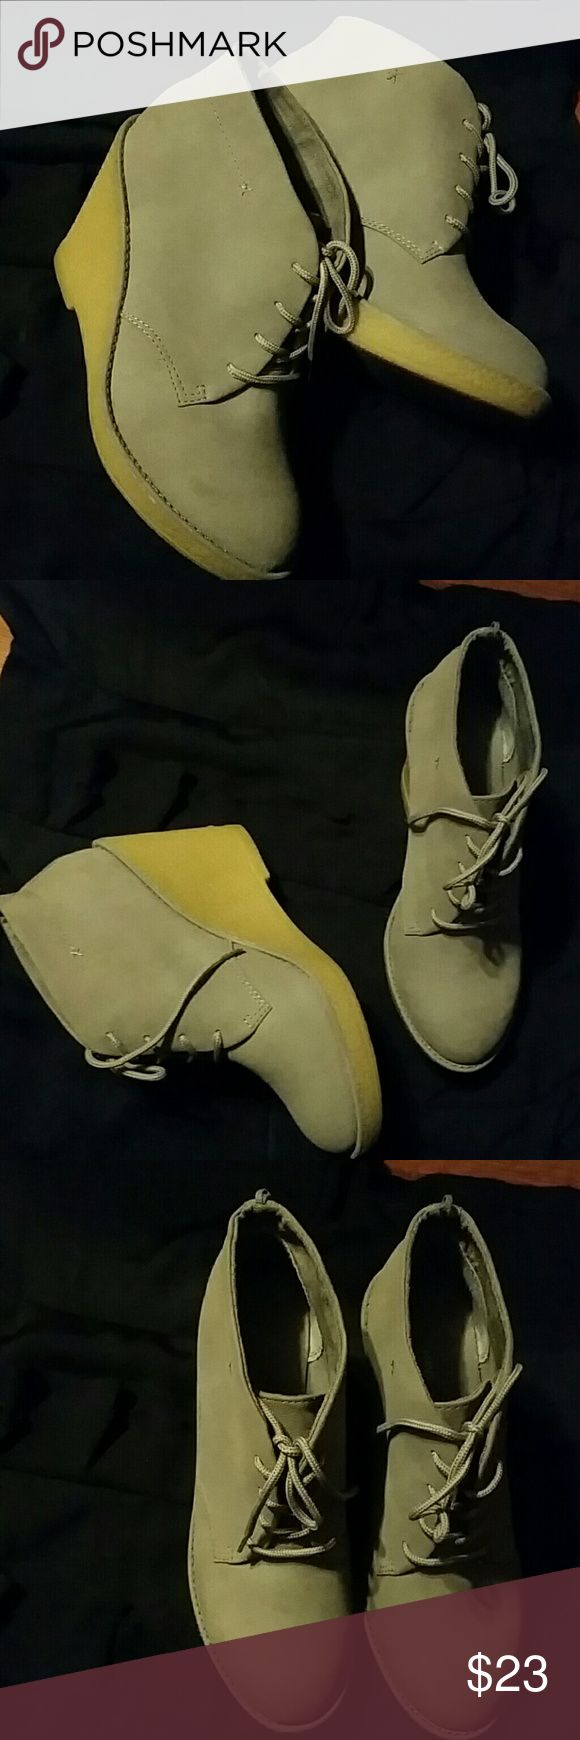 Old Navy Ankle  Boots. Size 9 Bearly used Old Navy Gray Ankle boots. Platform style heel and rubber made. In great condition. Old Navy Shoes Ankle Boots & Booties